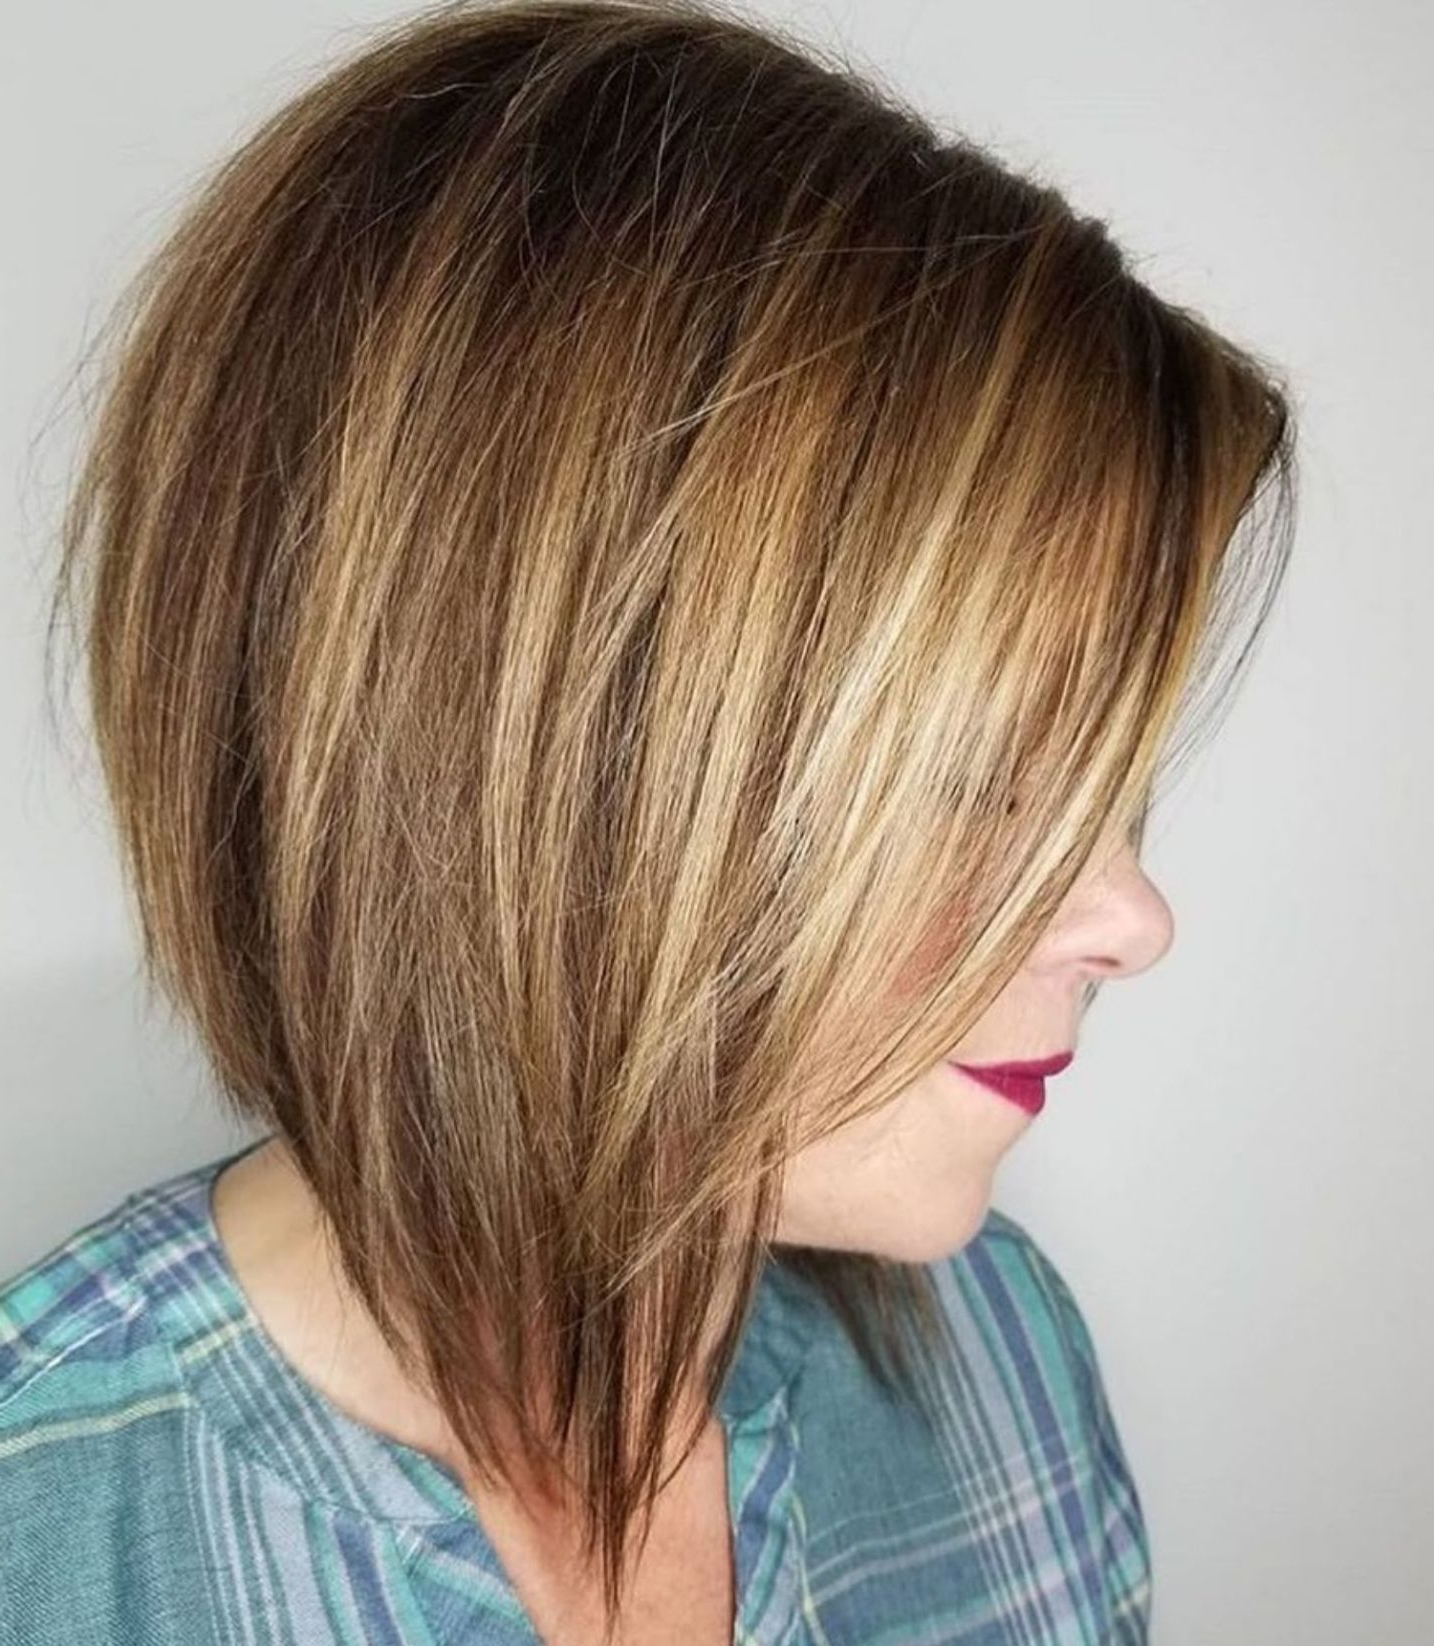 50 Trendy Inverted Bob Haircuts | Medium Hairstyle | Pinterest With Regard To Perfectly Angled Caramel Bob Haircuts (View 11 of 20)